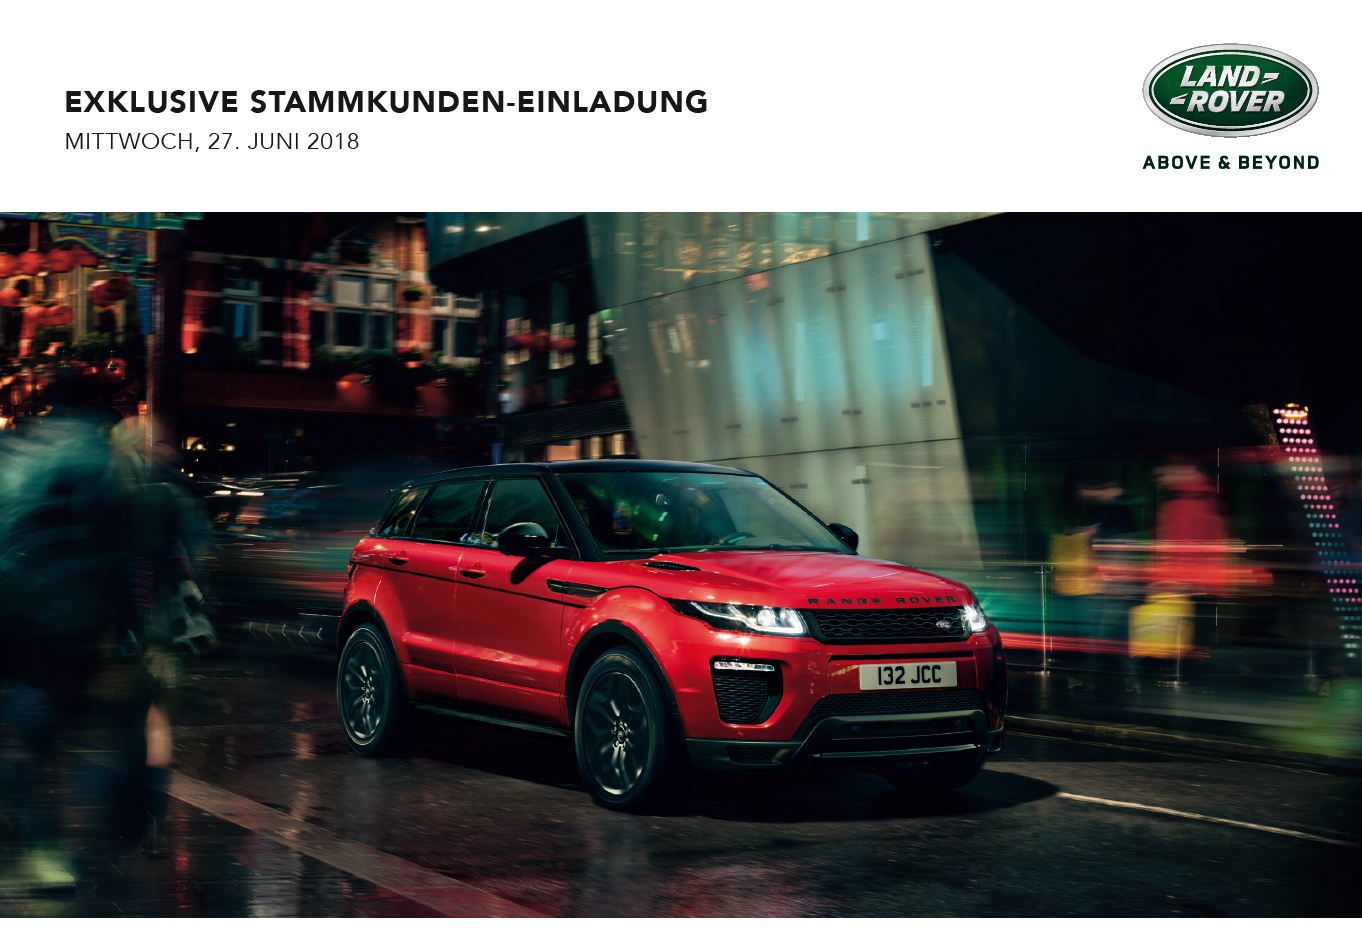 Land Rover Stammkunden-Tag